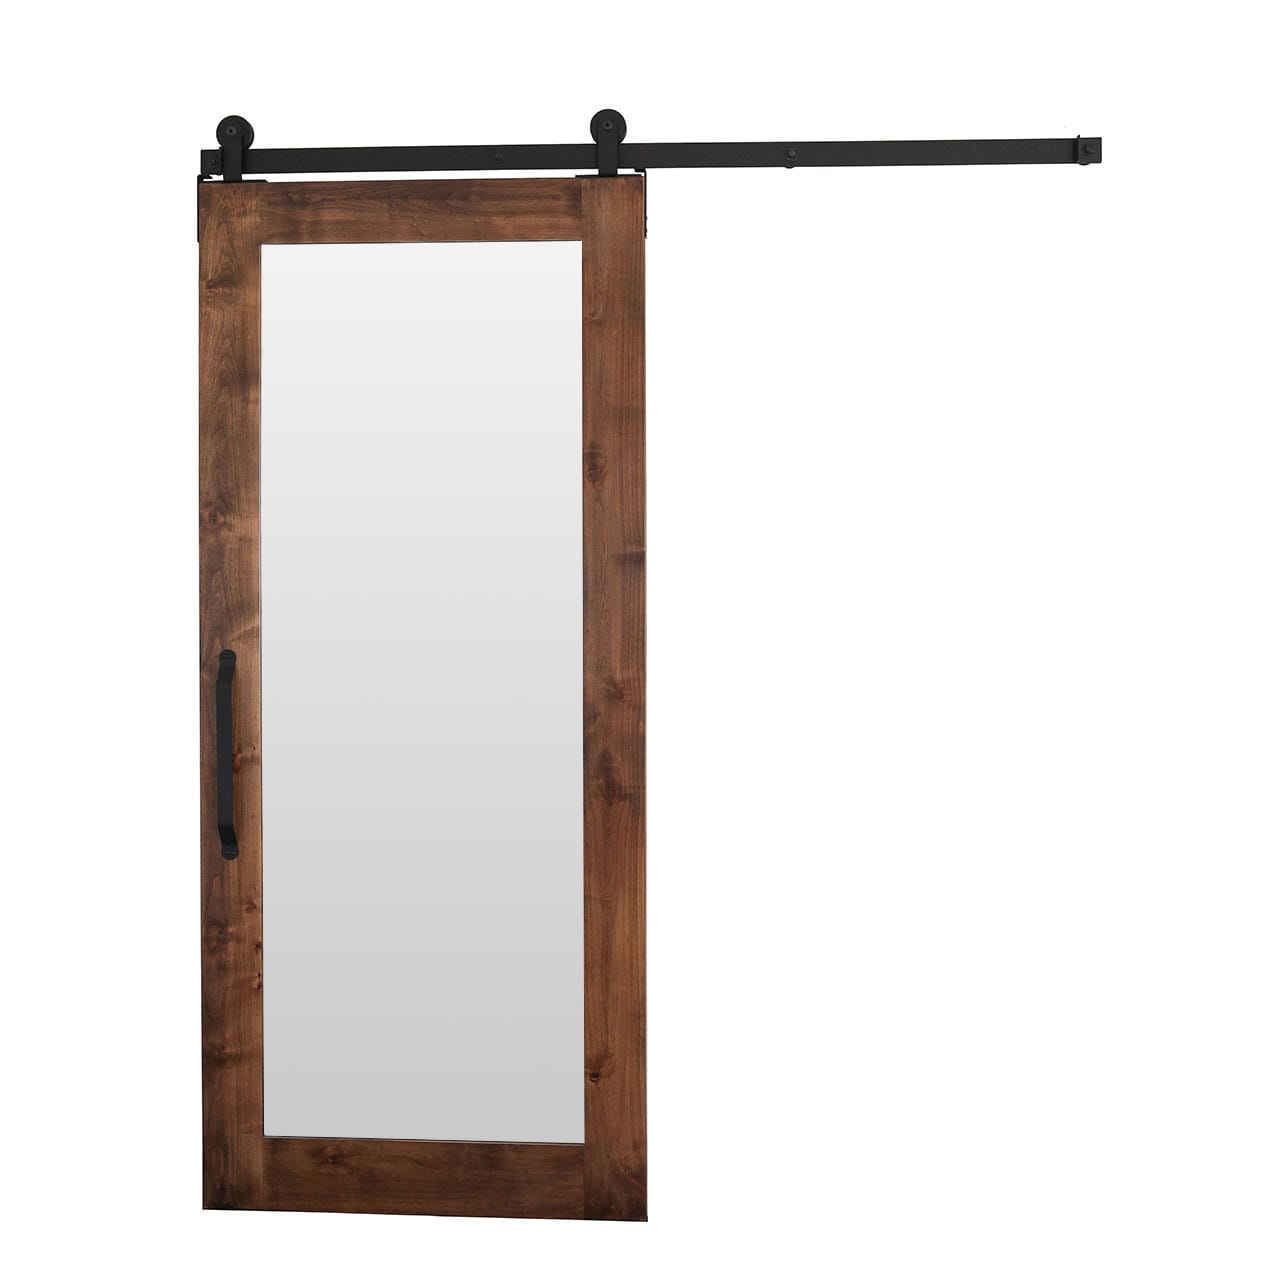 Rustica Hardware 42 X 84 Inch Mirror Barn Door With Flat Track Hardware